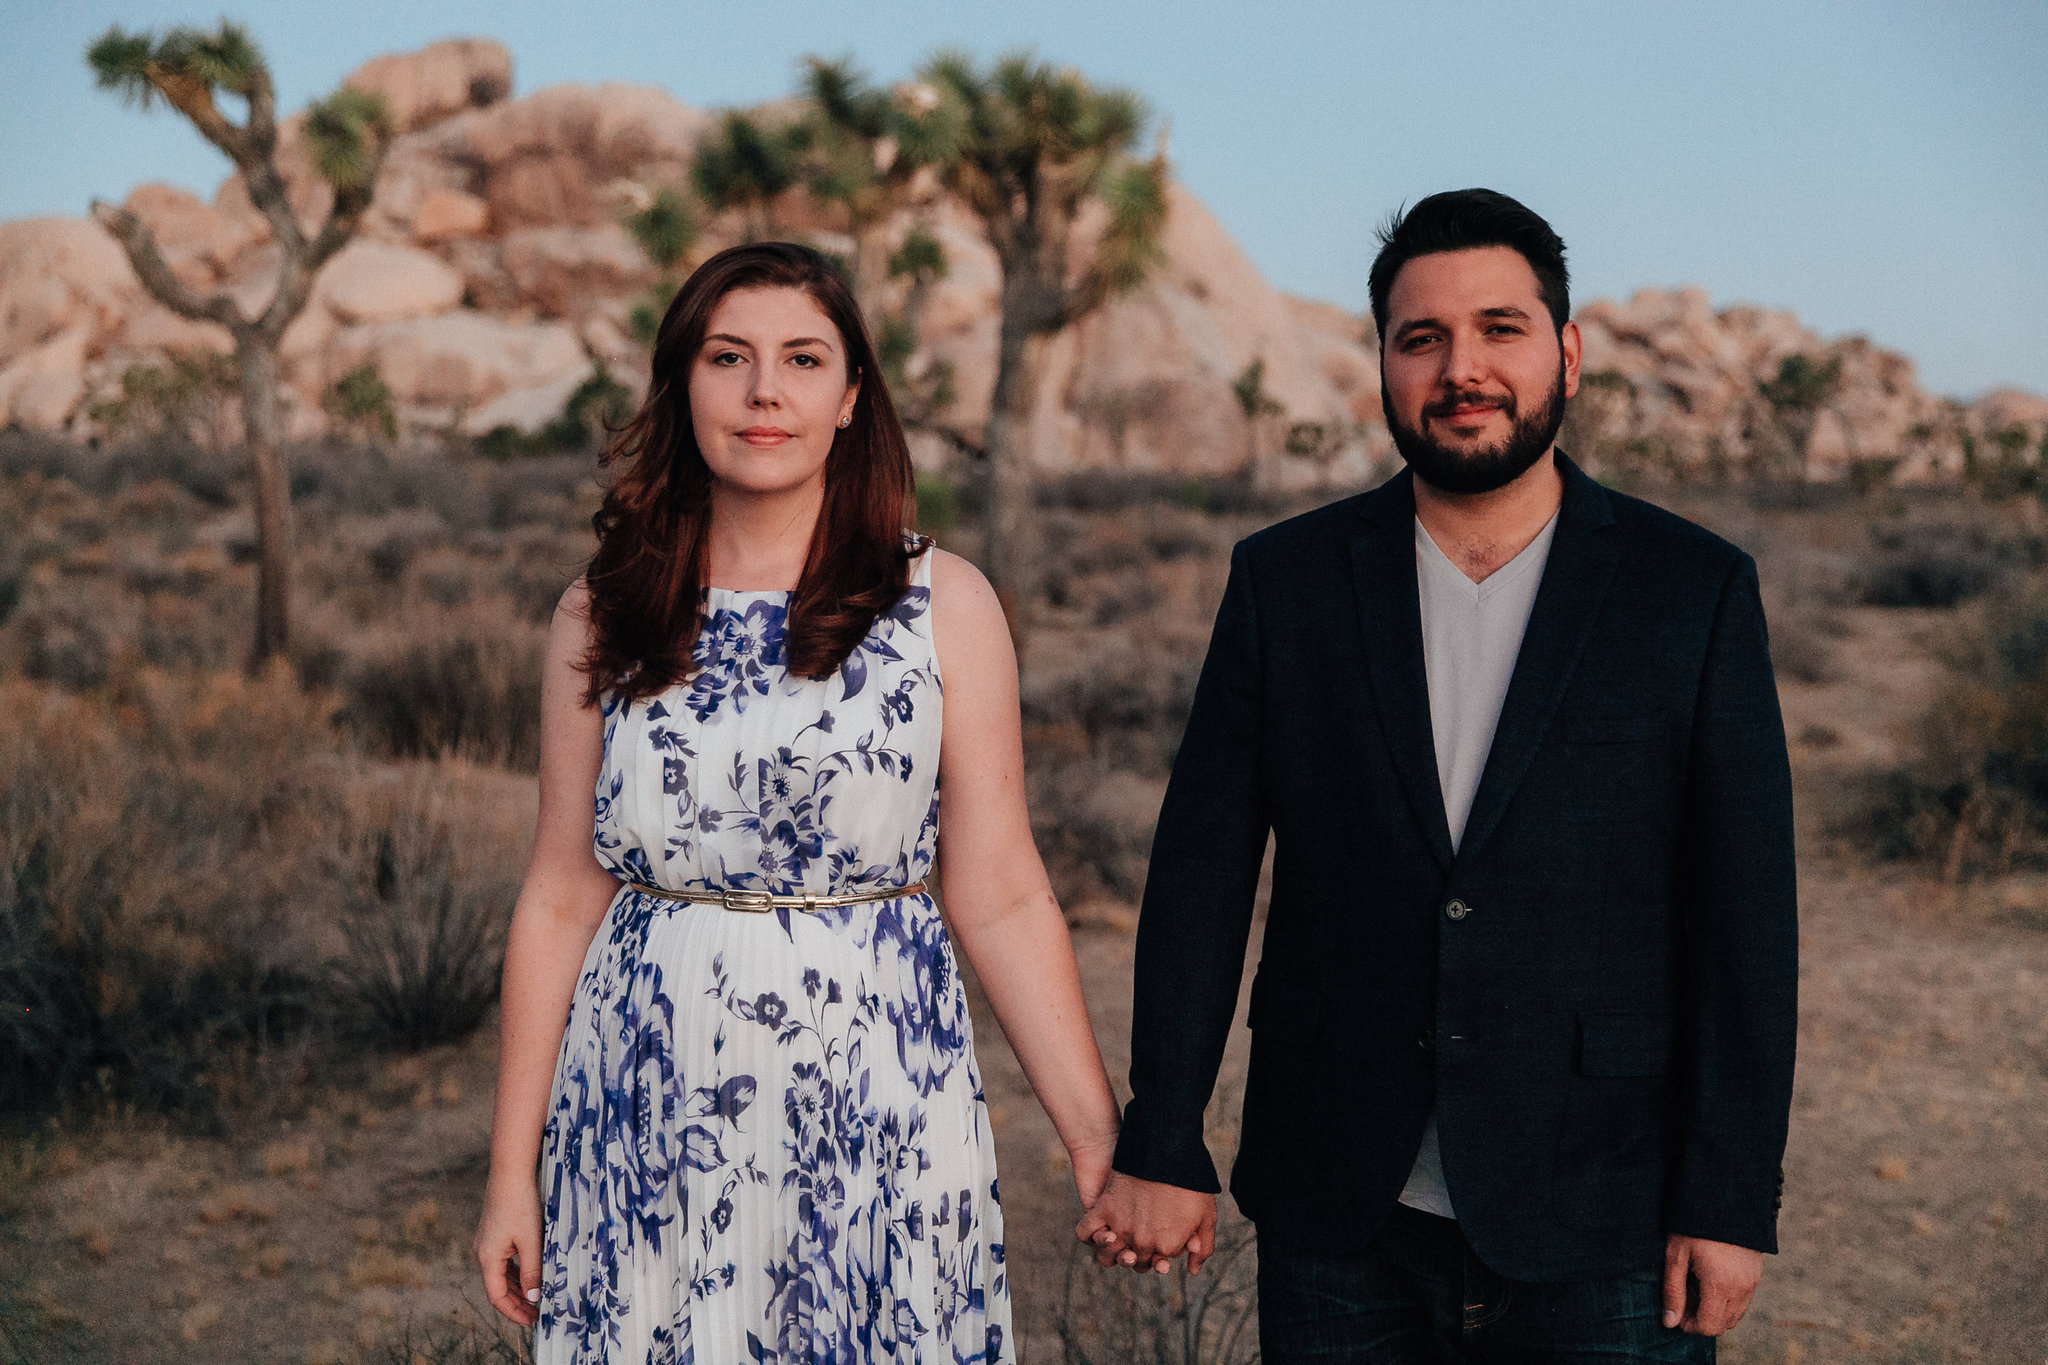 joshua-tree-engagement-session_marble-rye-photography-JA4.JPG